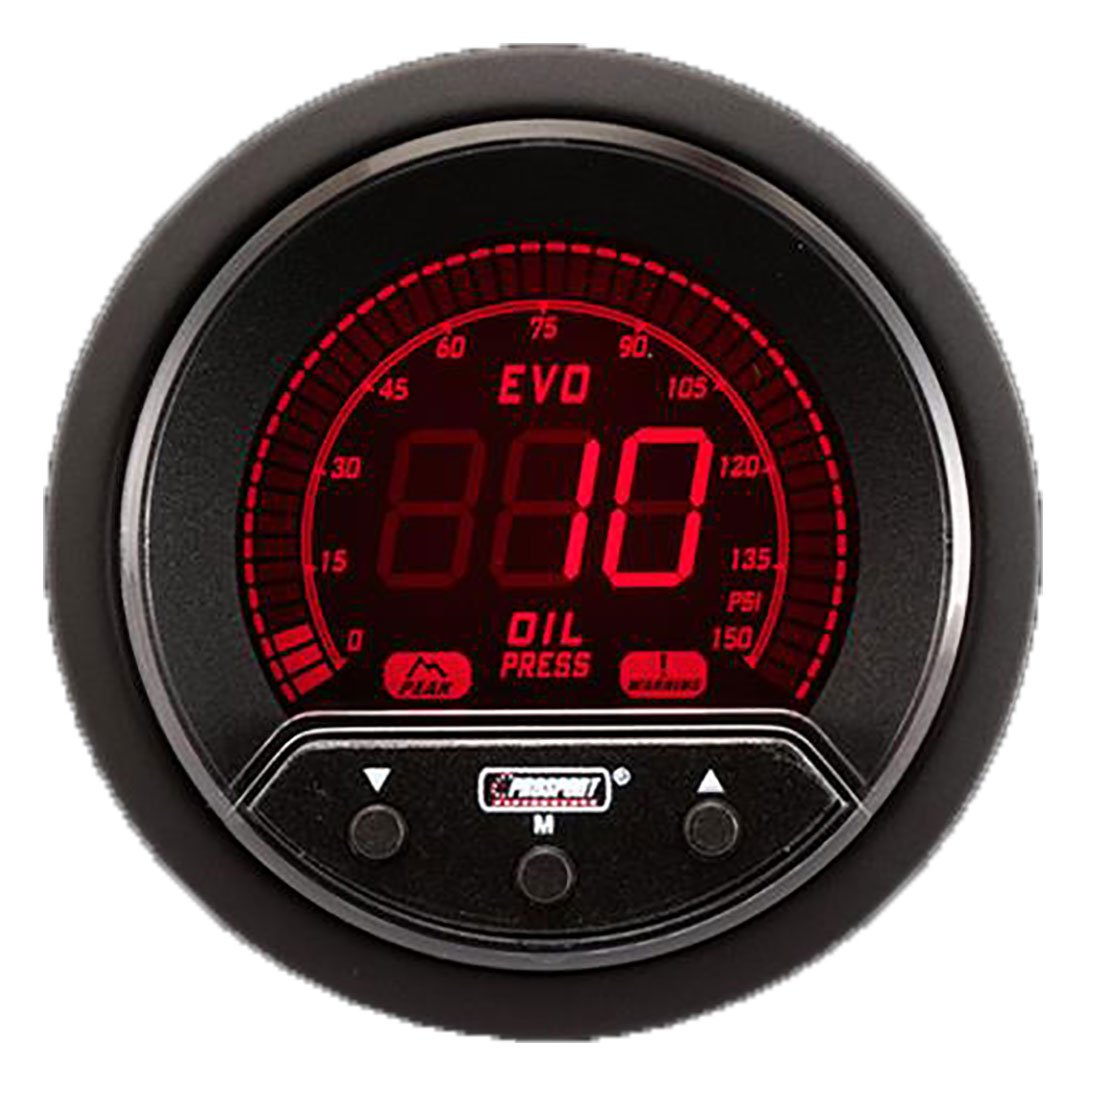 Prosport Performance Reliable 52mm Premium Evo Electrical Oil Pressure Gauge Prosport Gauges 216EVOOPPKPSI